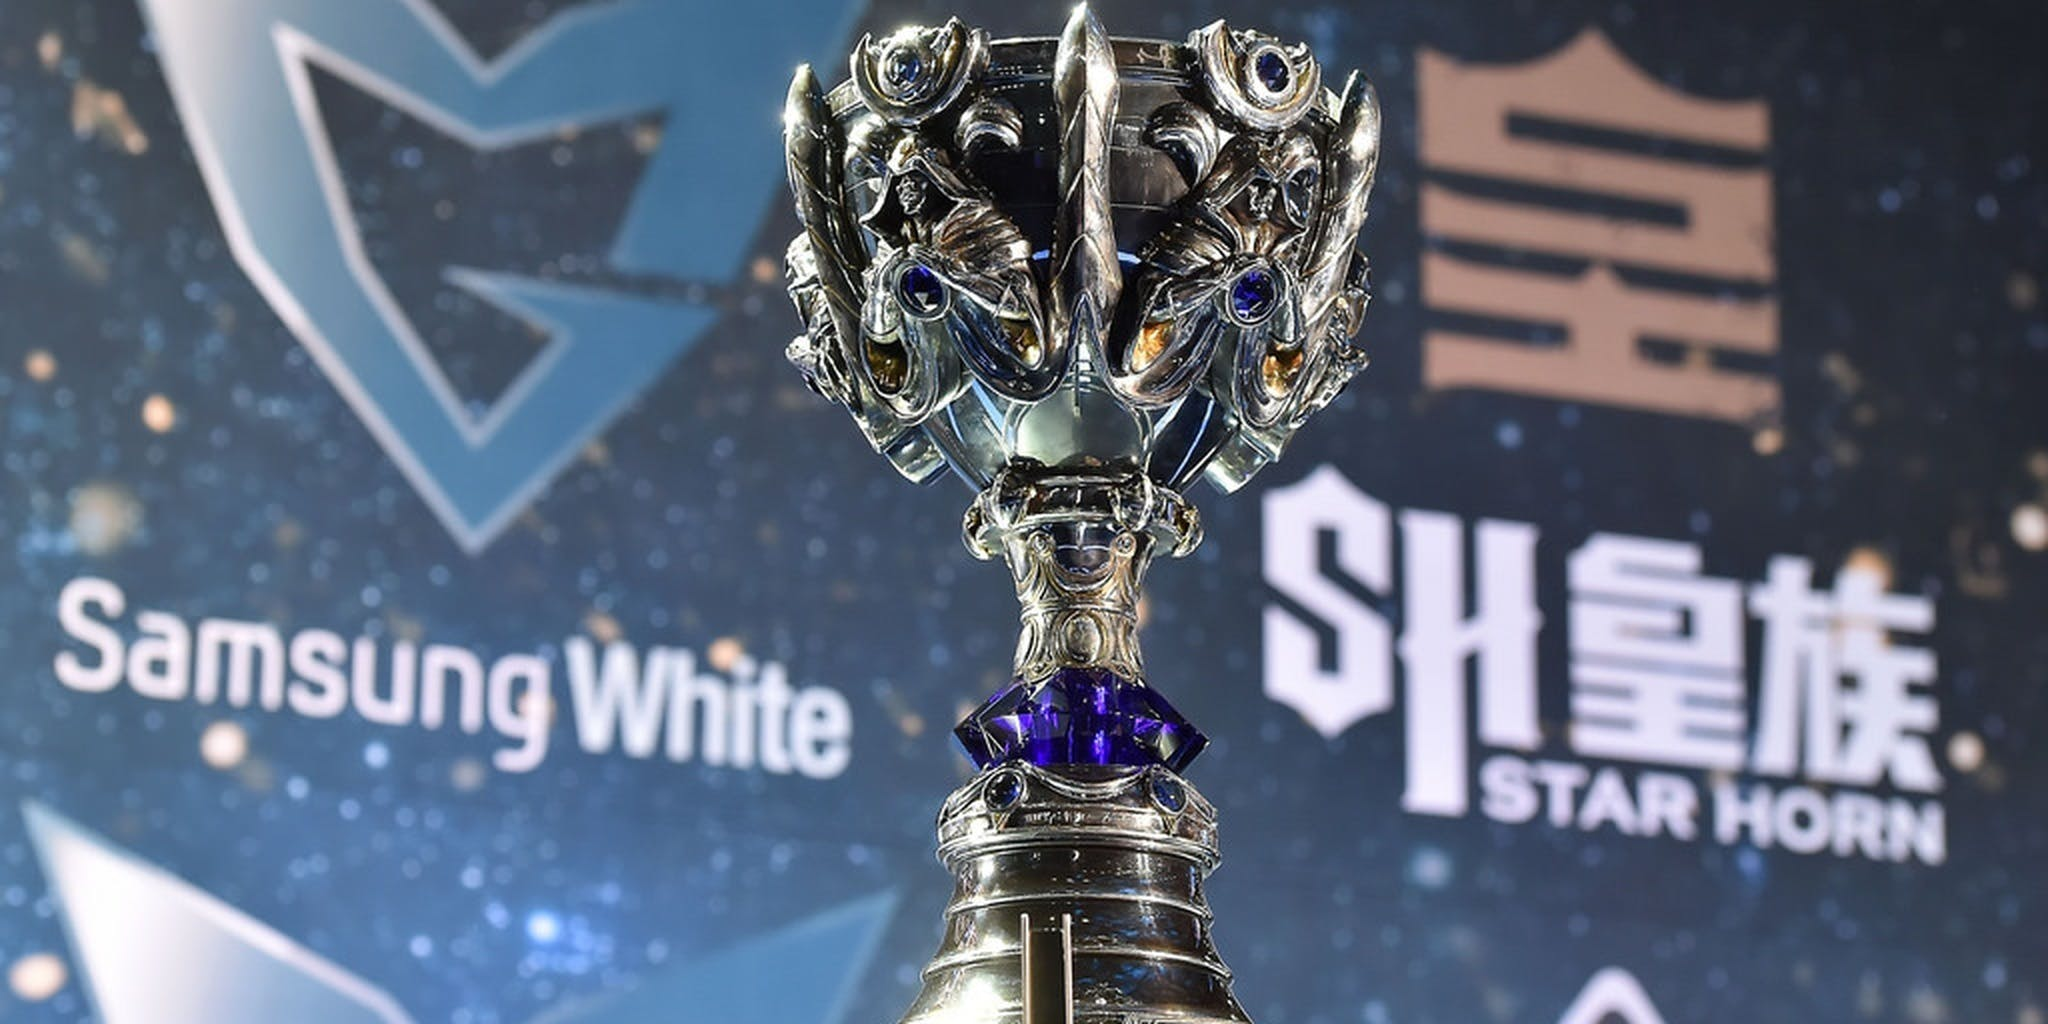 League of Legend's Championship trophy the Summoner's Cup